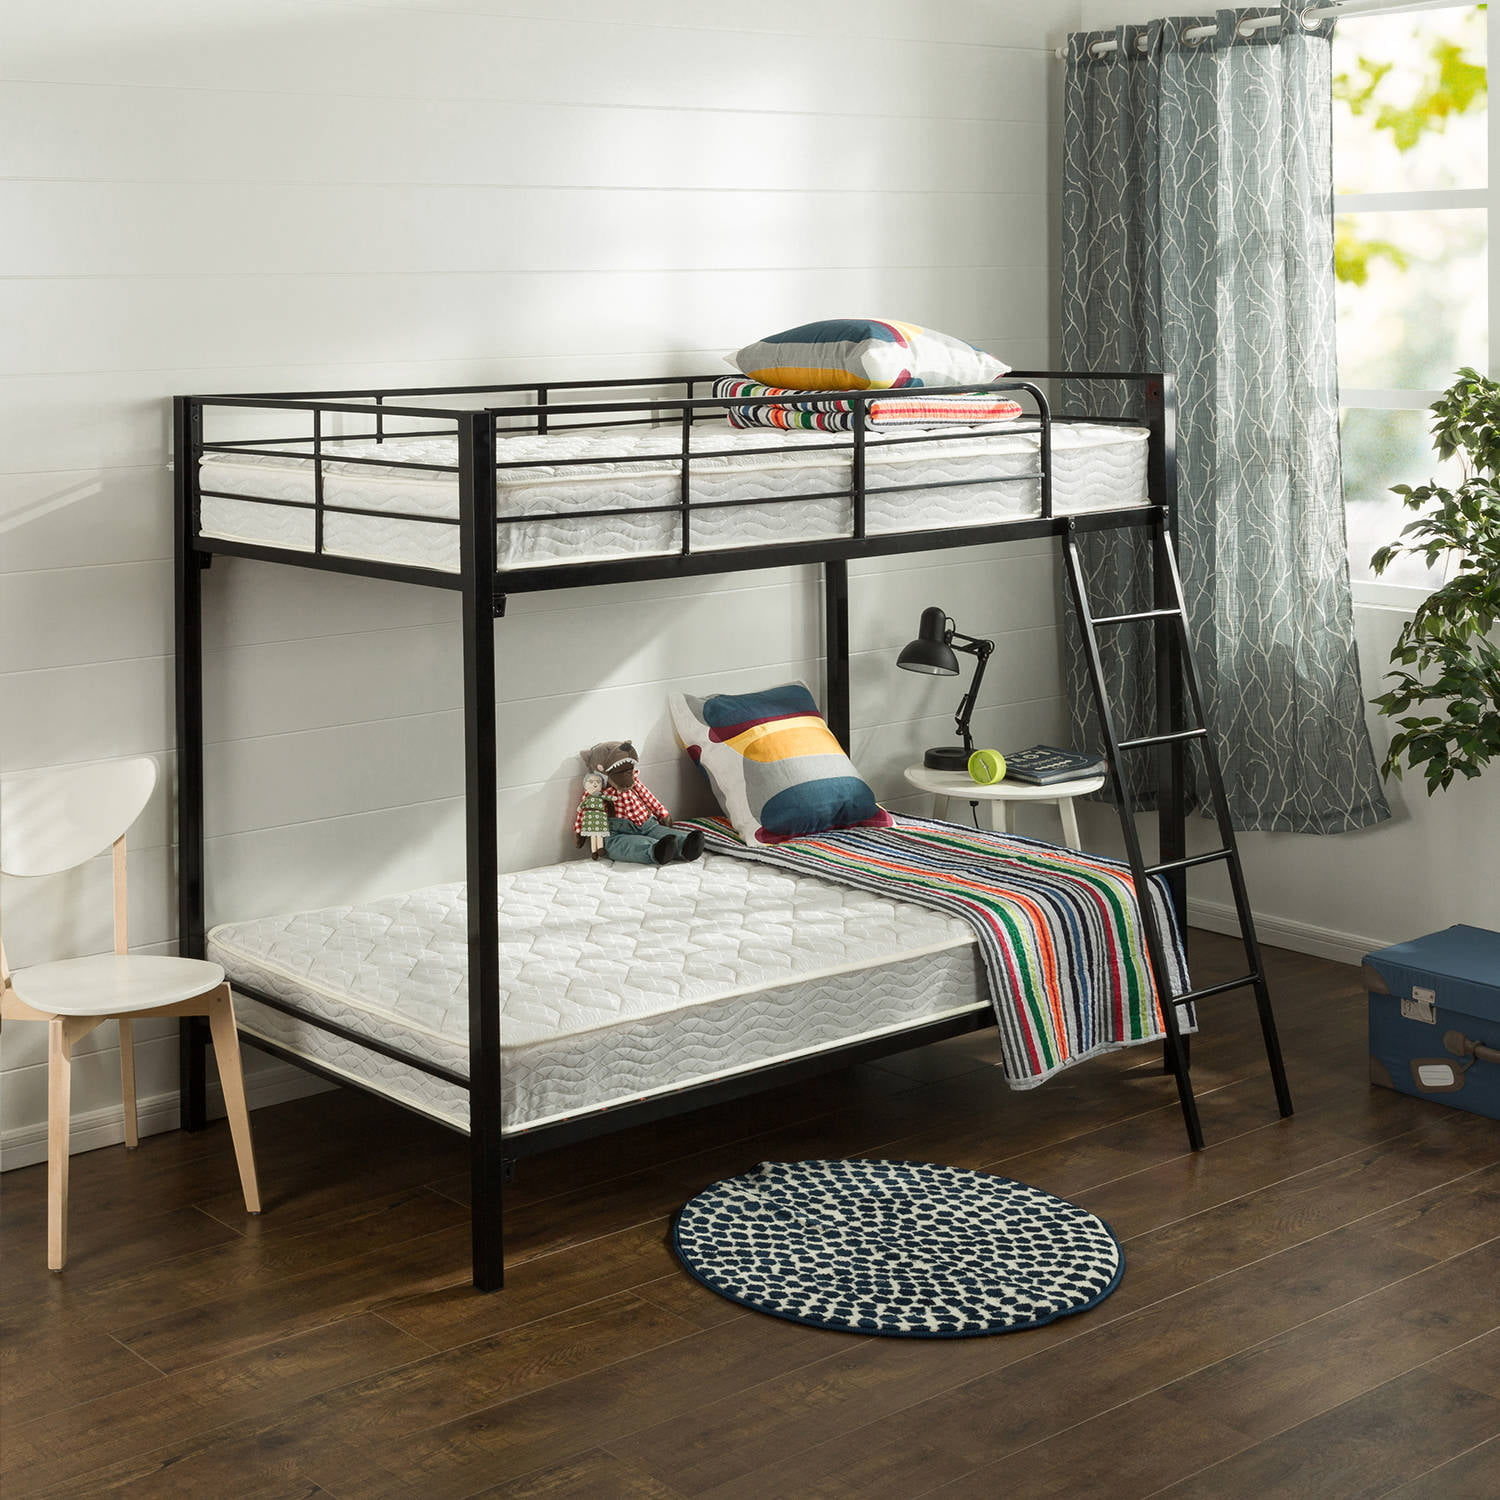 Twin Pack Bunk Bed Spring Mattress